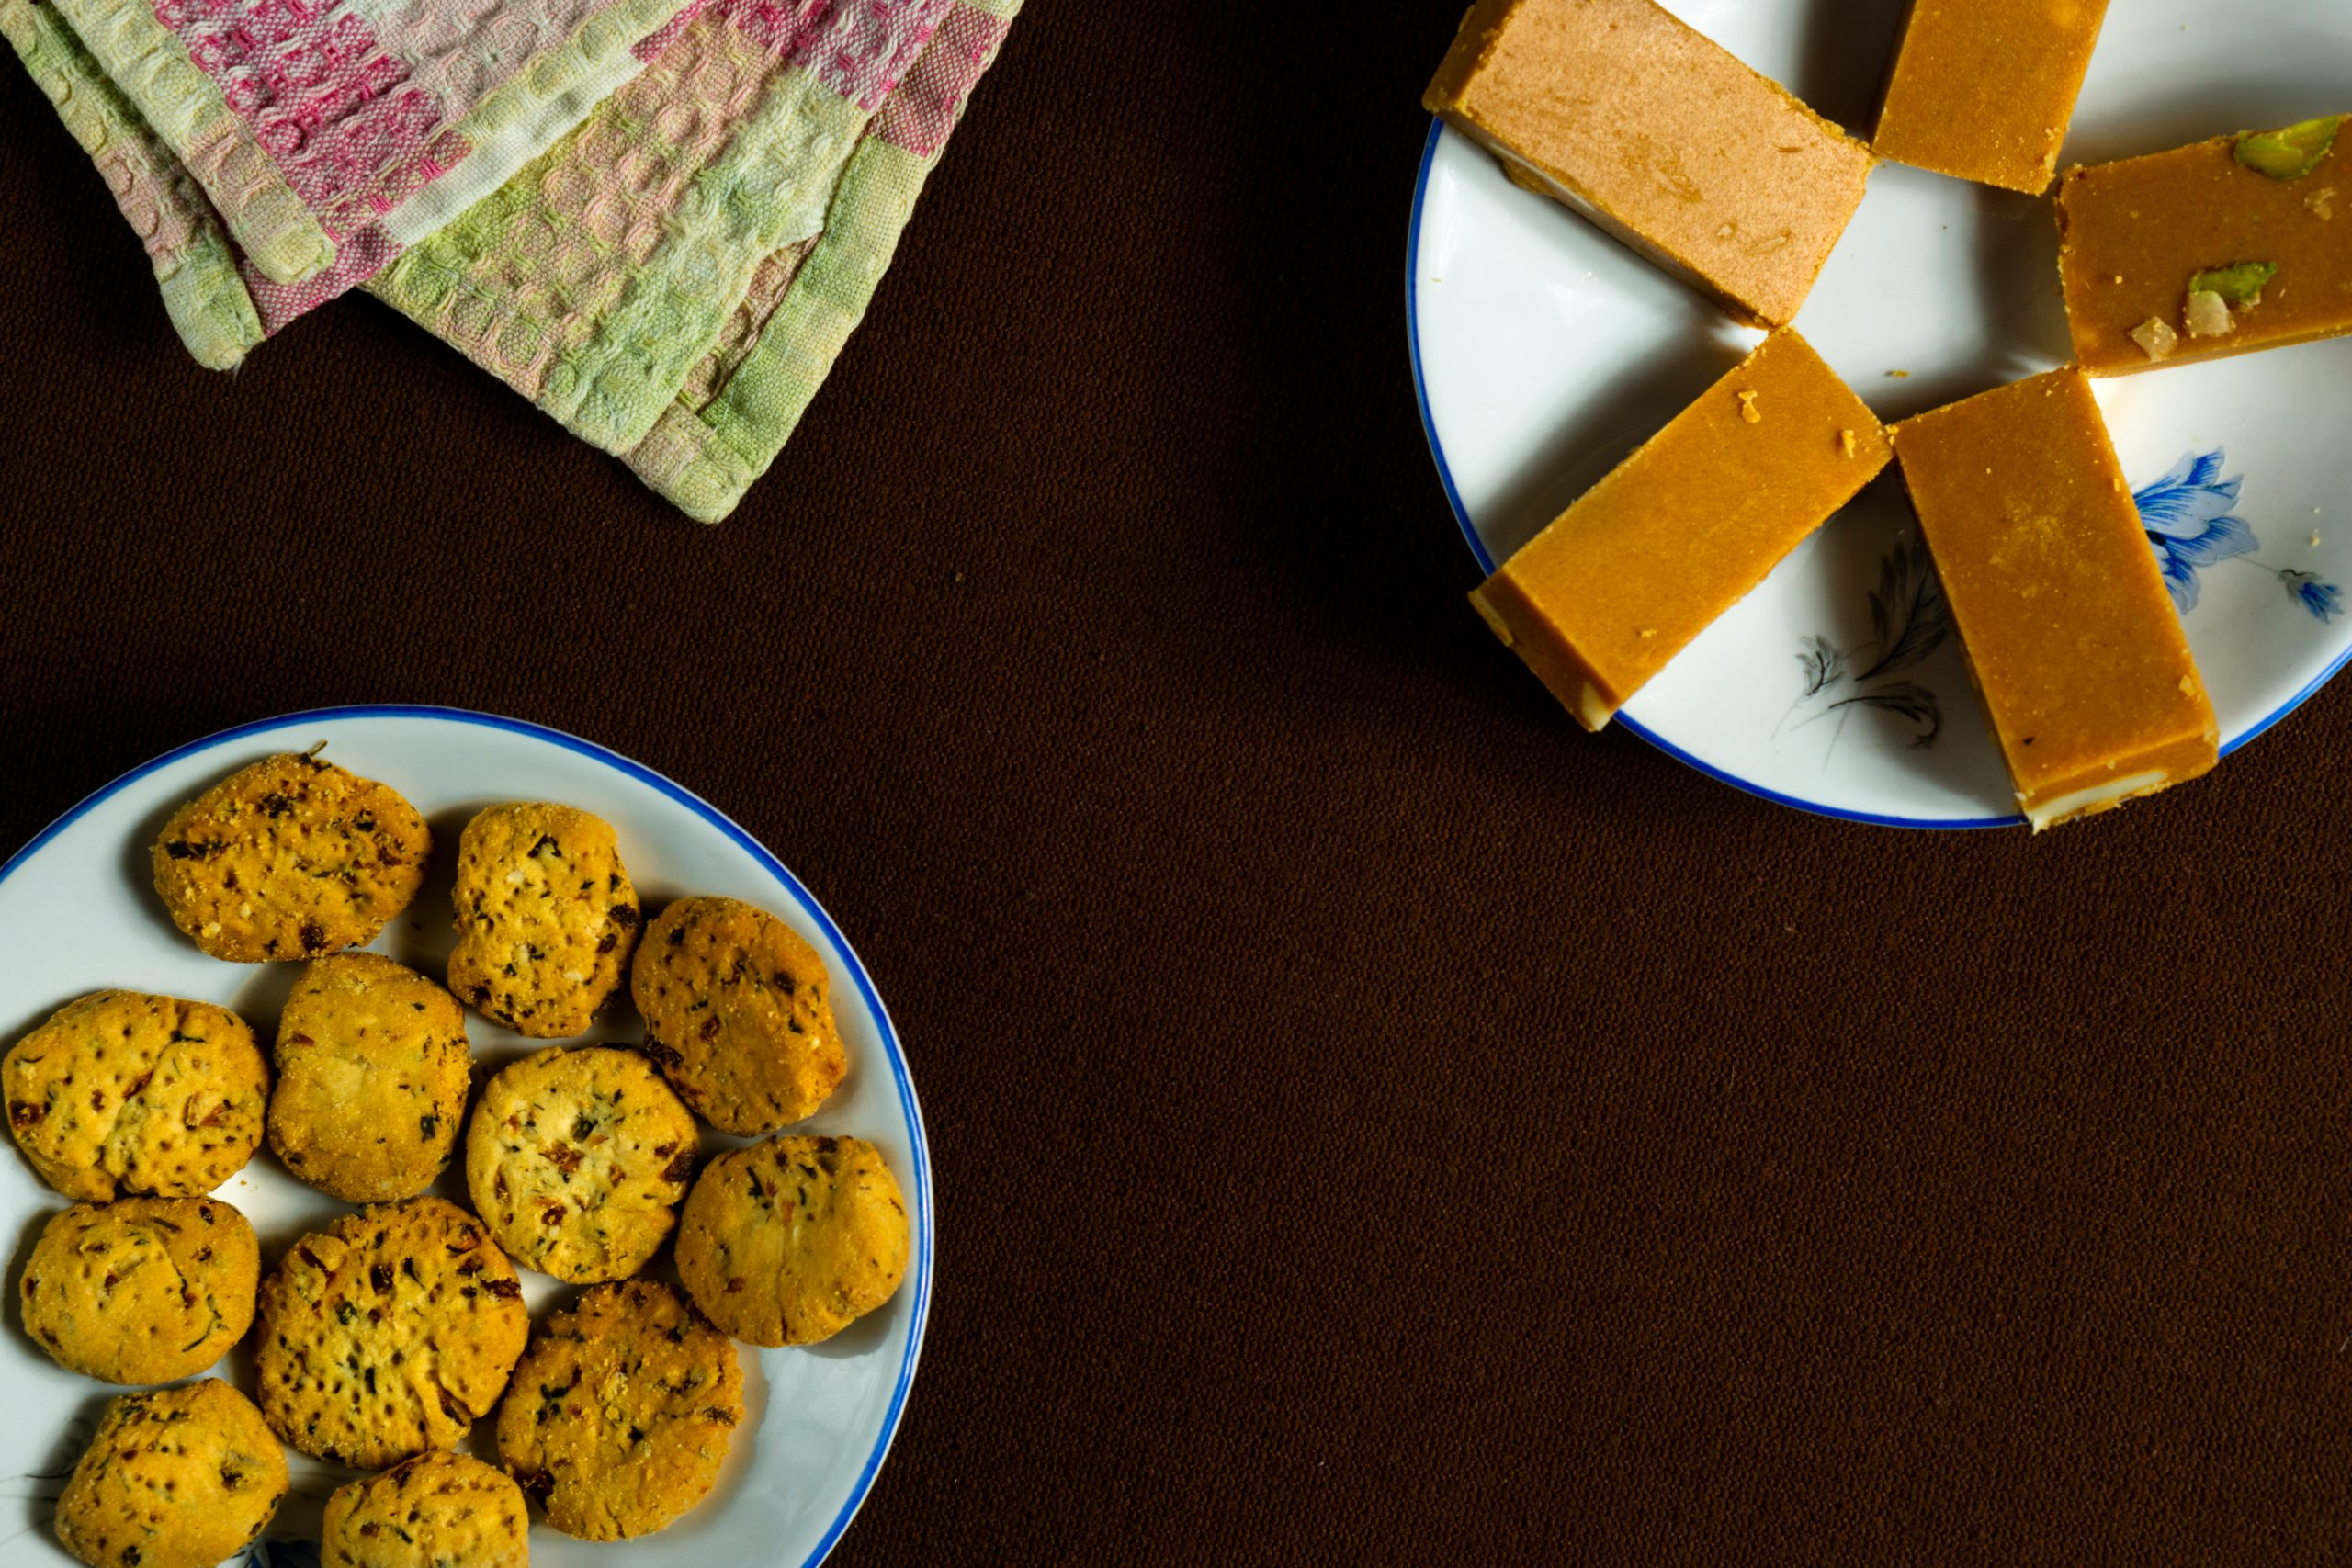 Biscuits and sweets